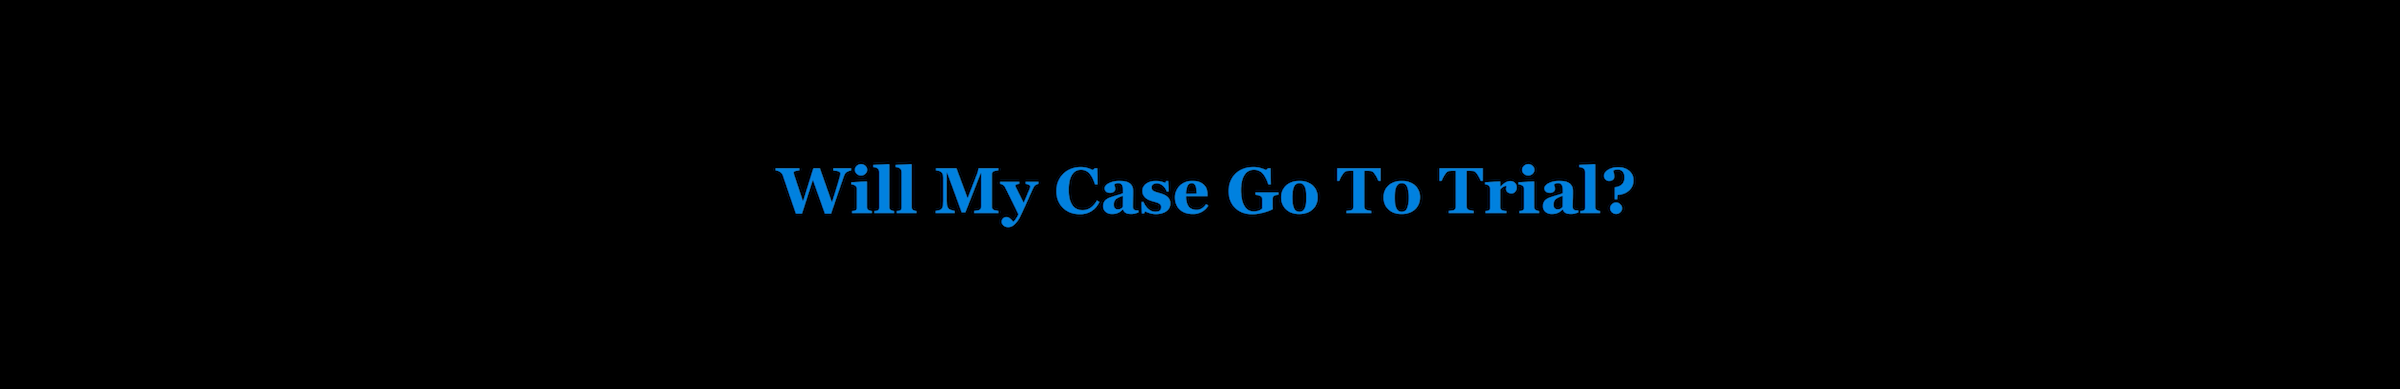 Injury Law: Will my case go to trial?